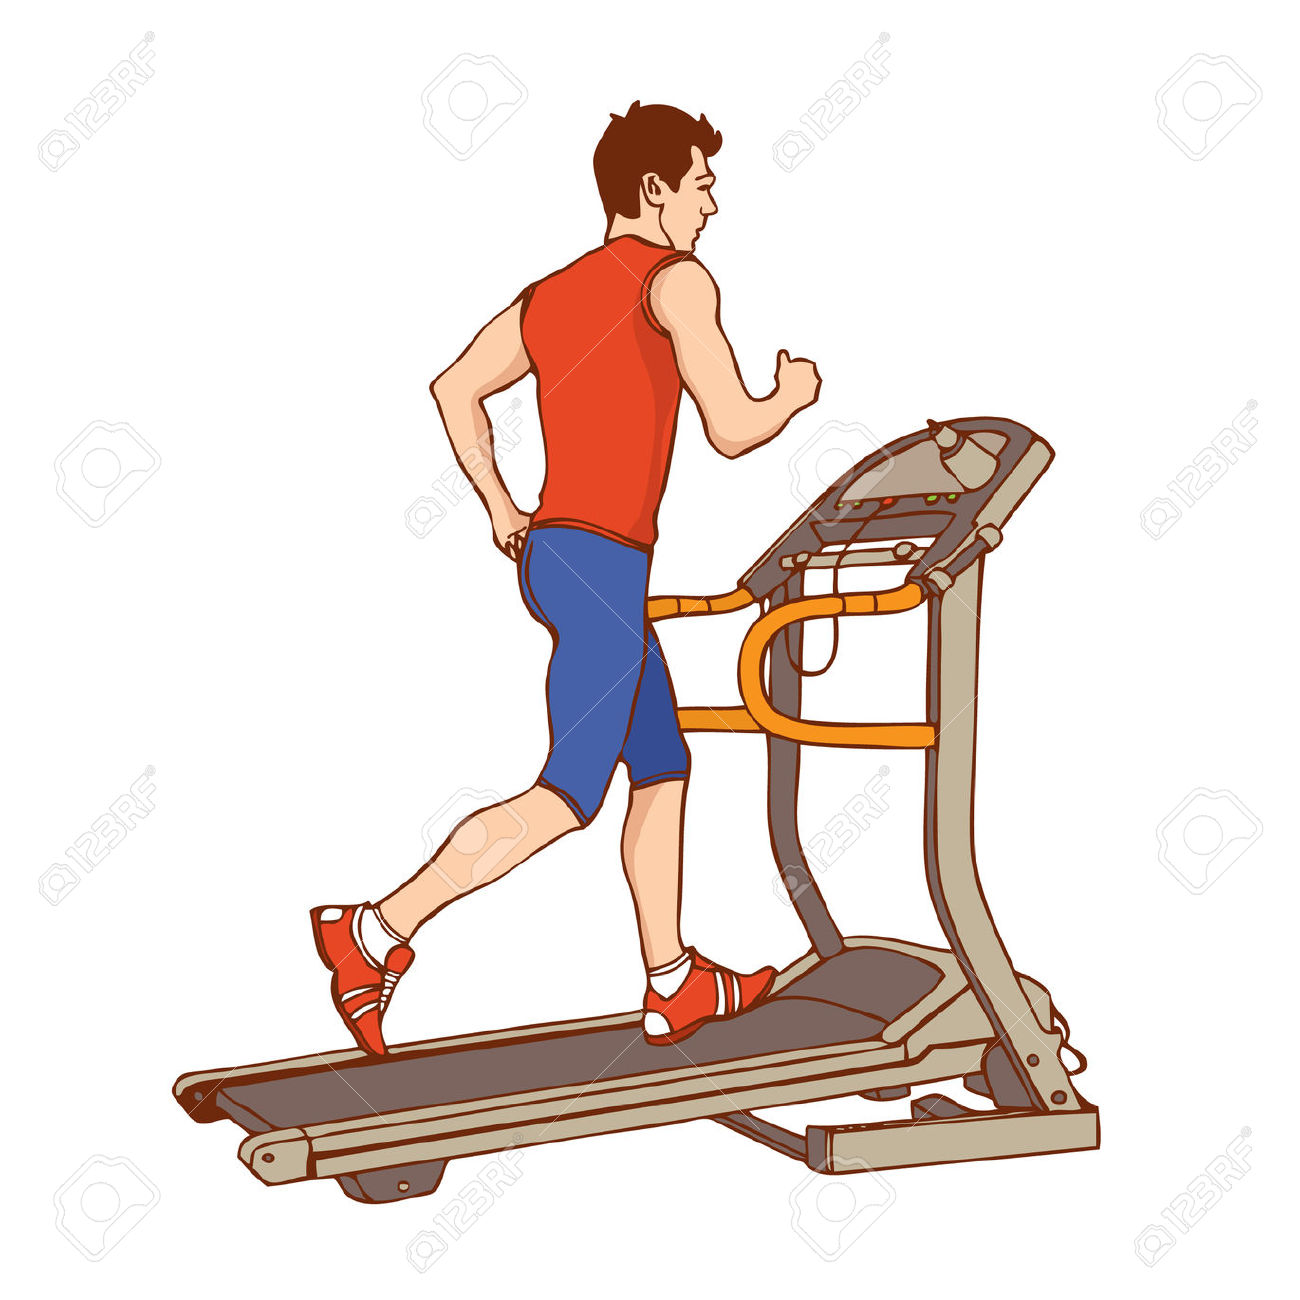 2 people on treadmill clipart graphic free library Free Exercising Treadmill Cliparts, Download Free Clip Art, Free ... graphic free library